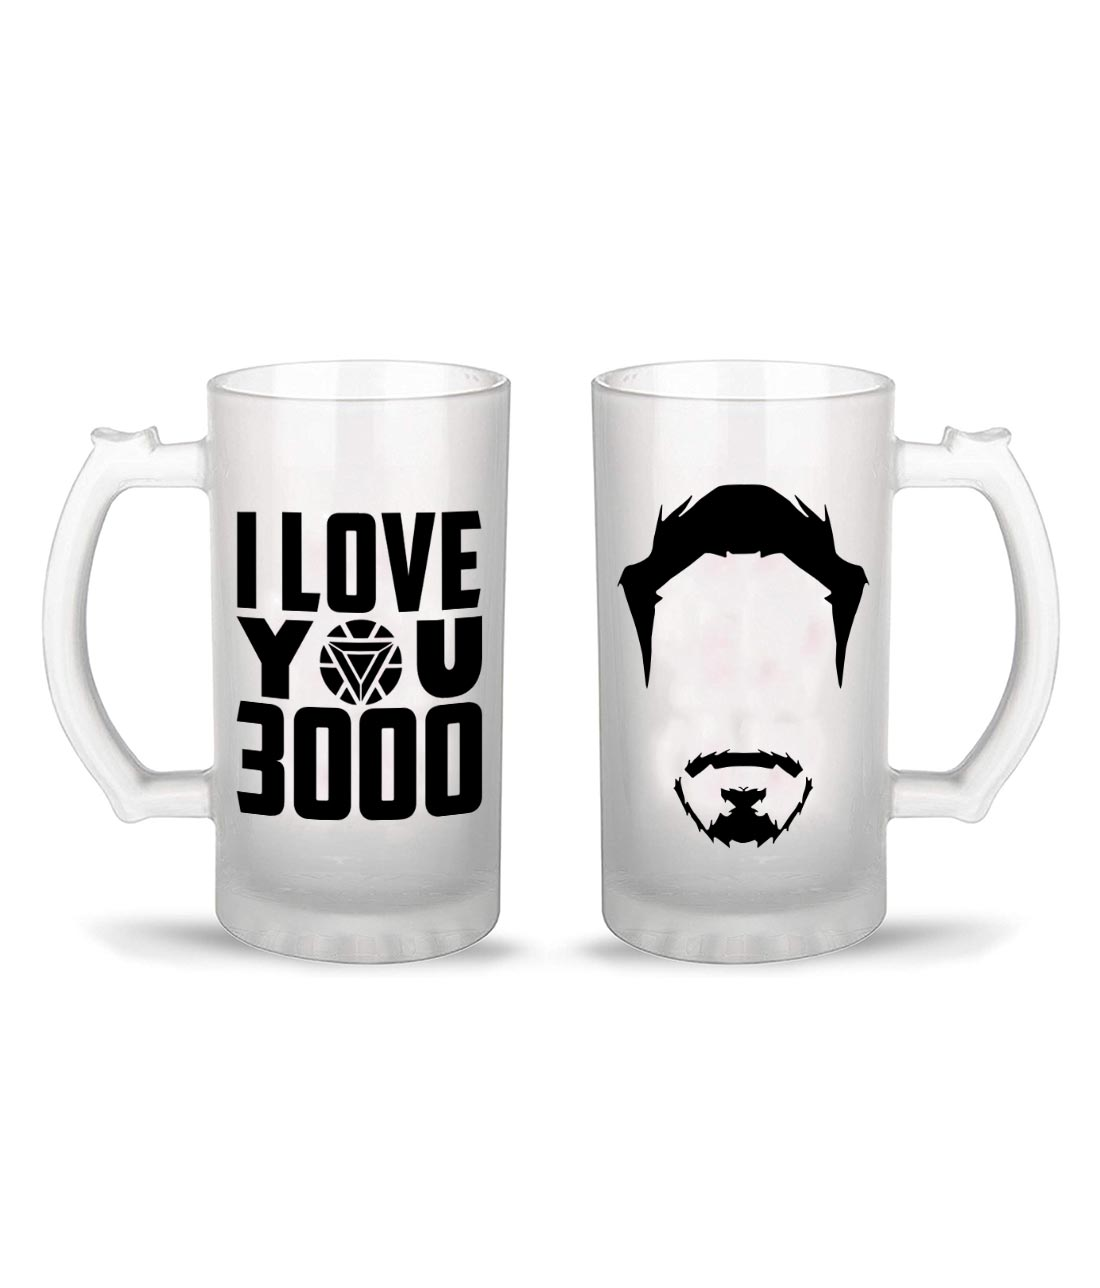 Love you 3000 - Party Mugs